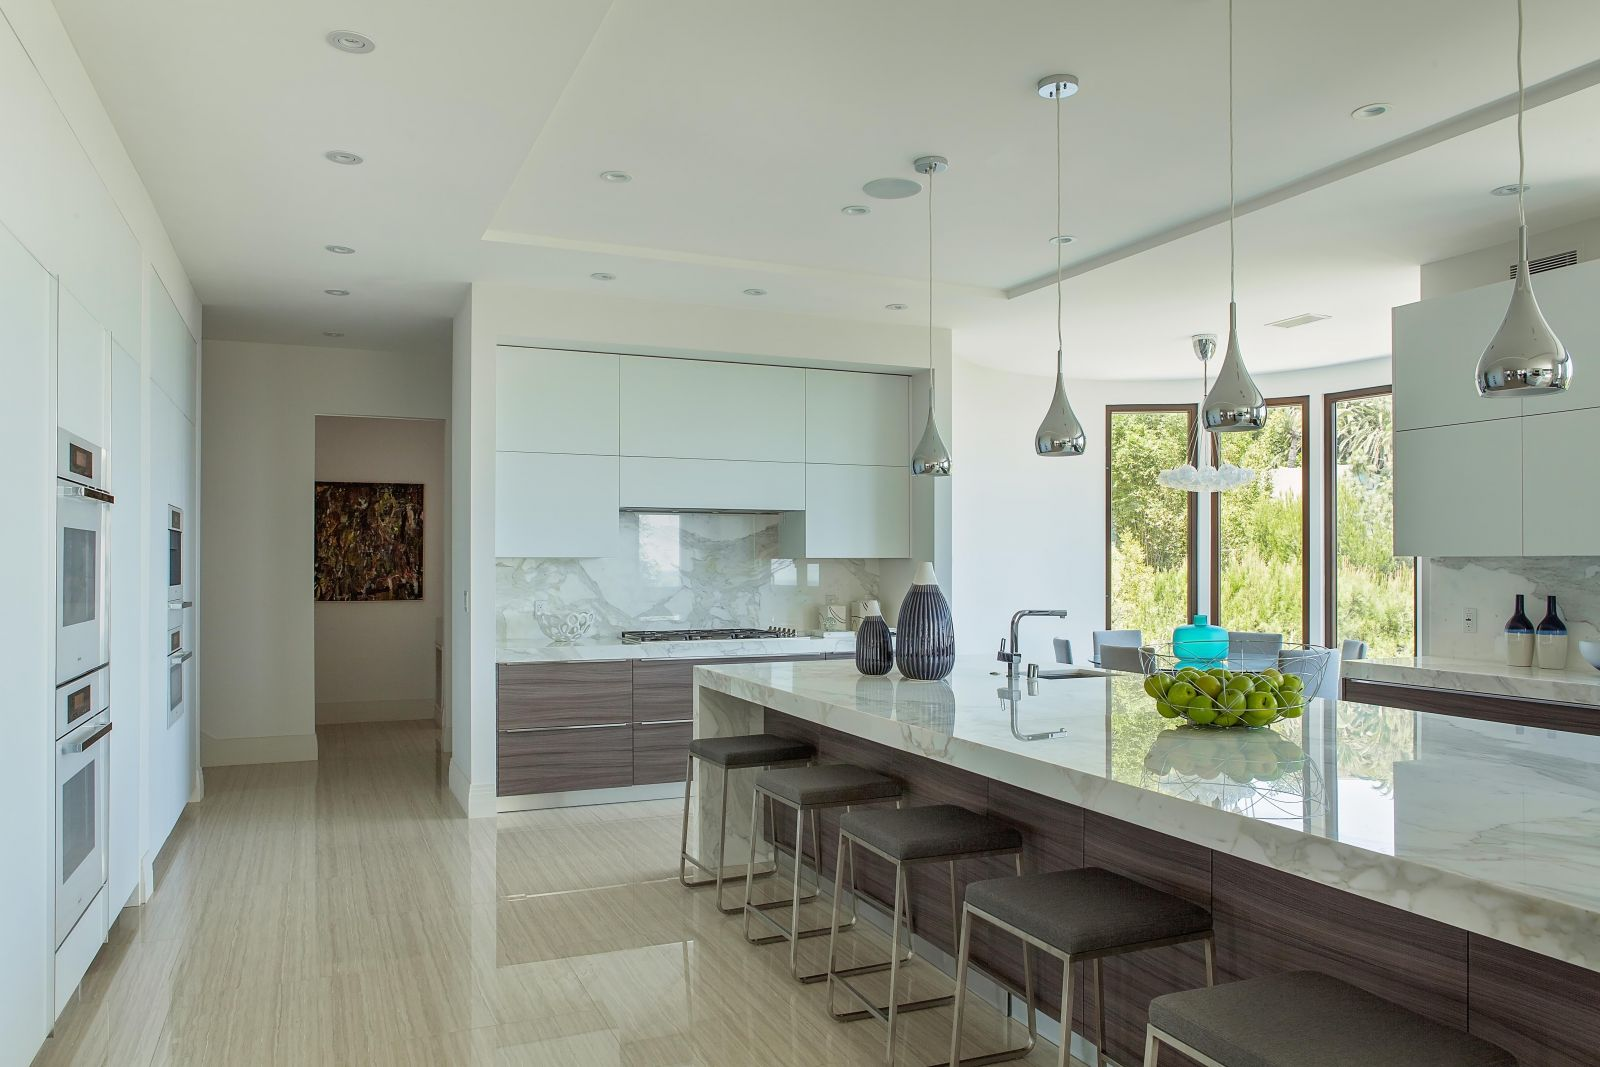 Kitchen cabinets Beverly Hills - all the best for your kitchens by MEF